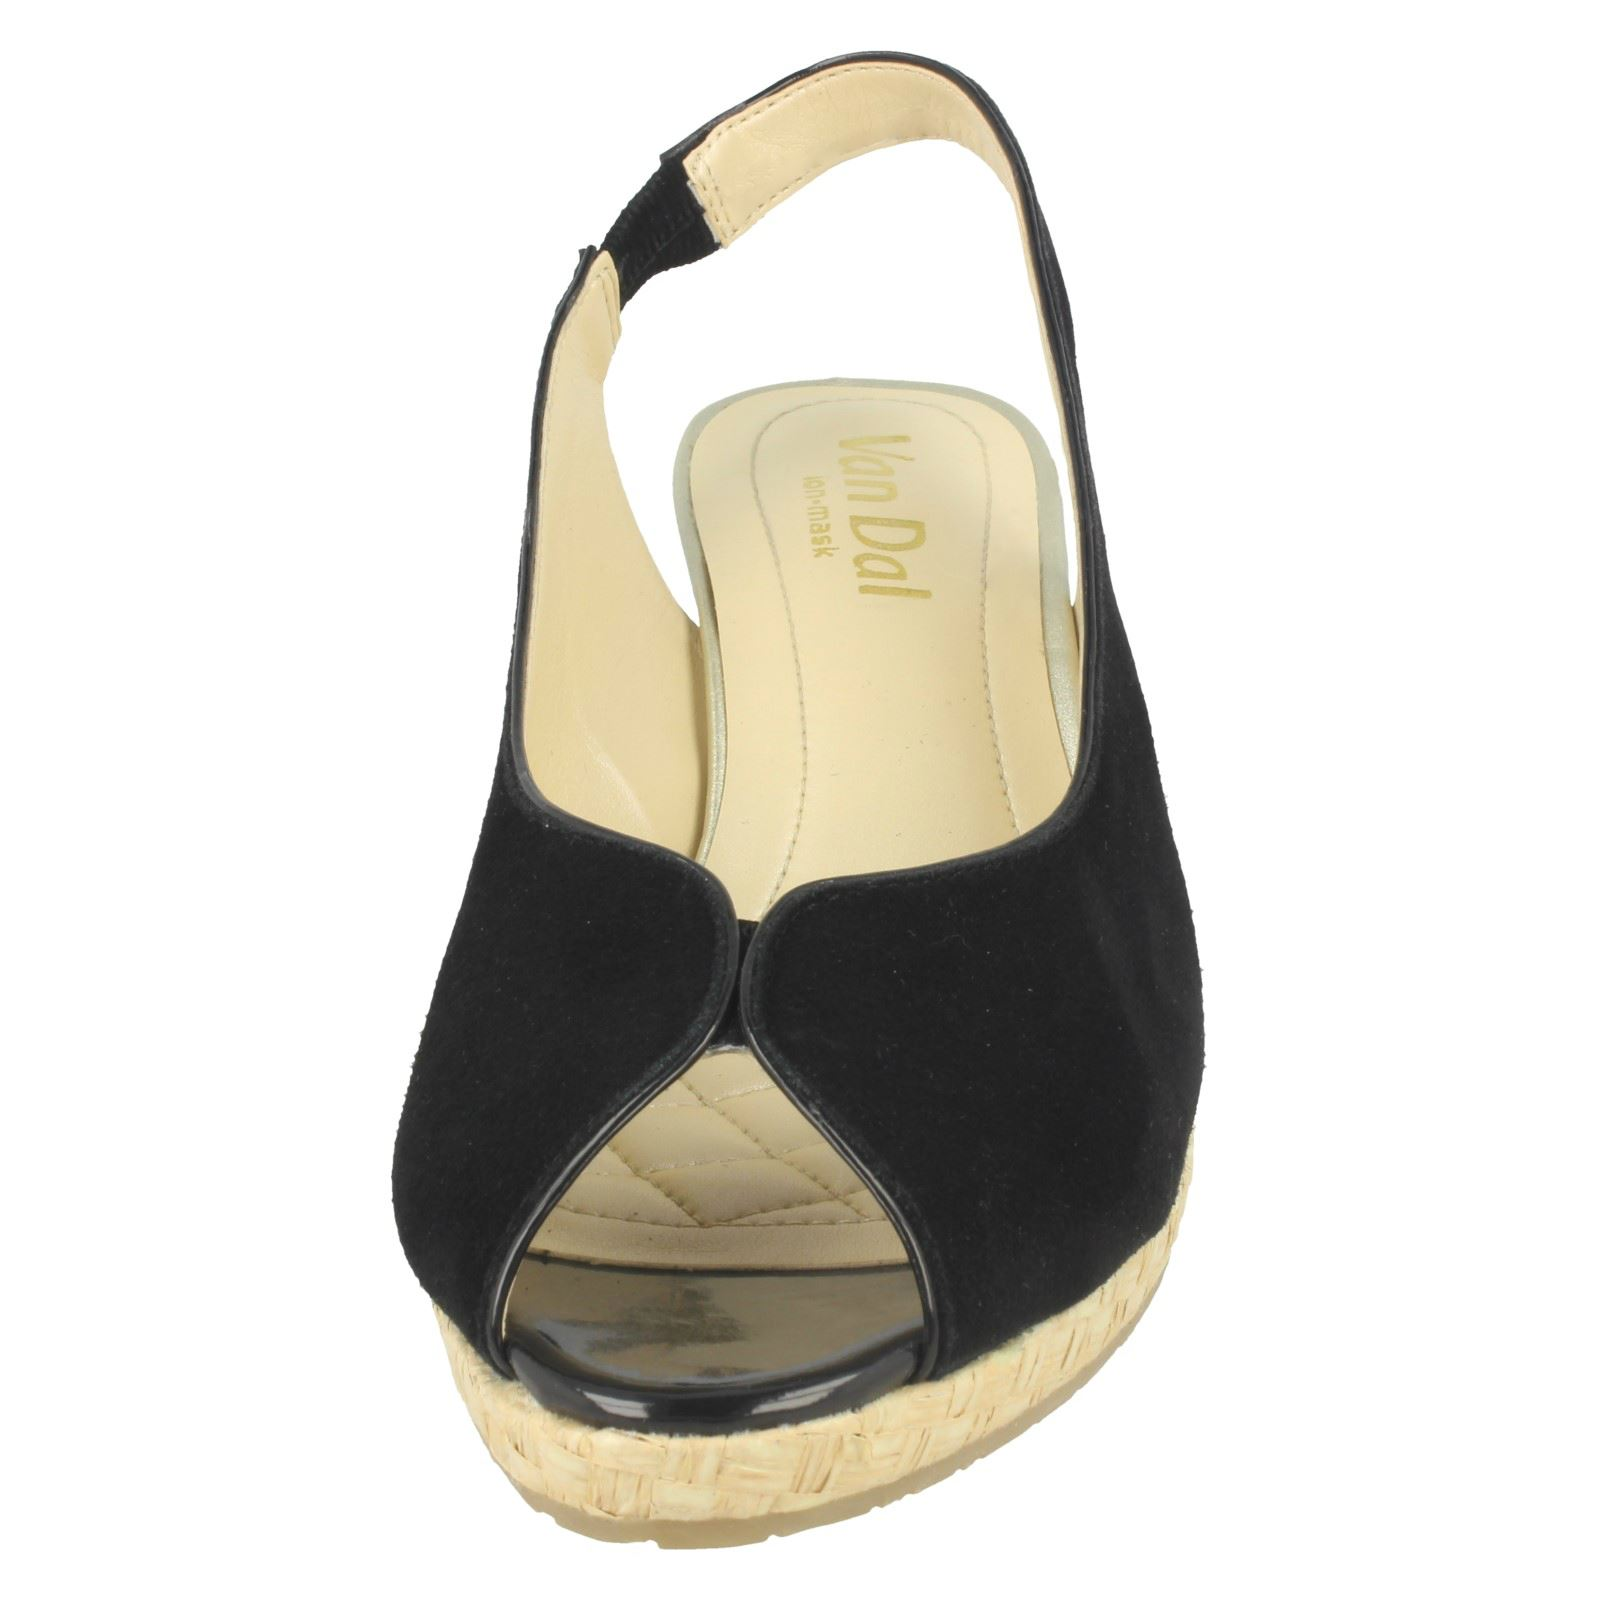 Ladies-Van-Dal-Leather-Wedge-Sandal-With-Woven-Detail-Avalon thumbnail 5